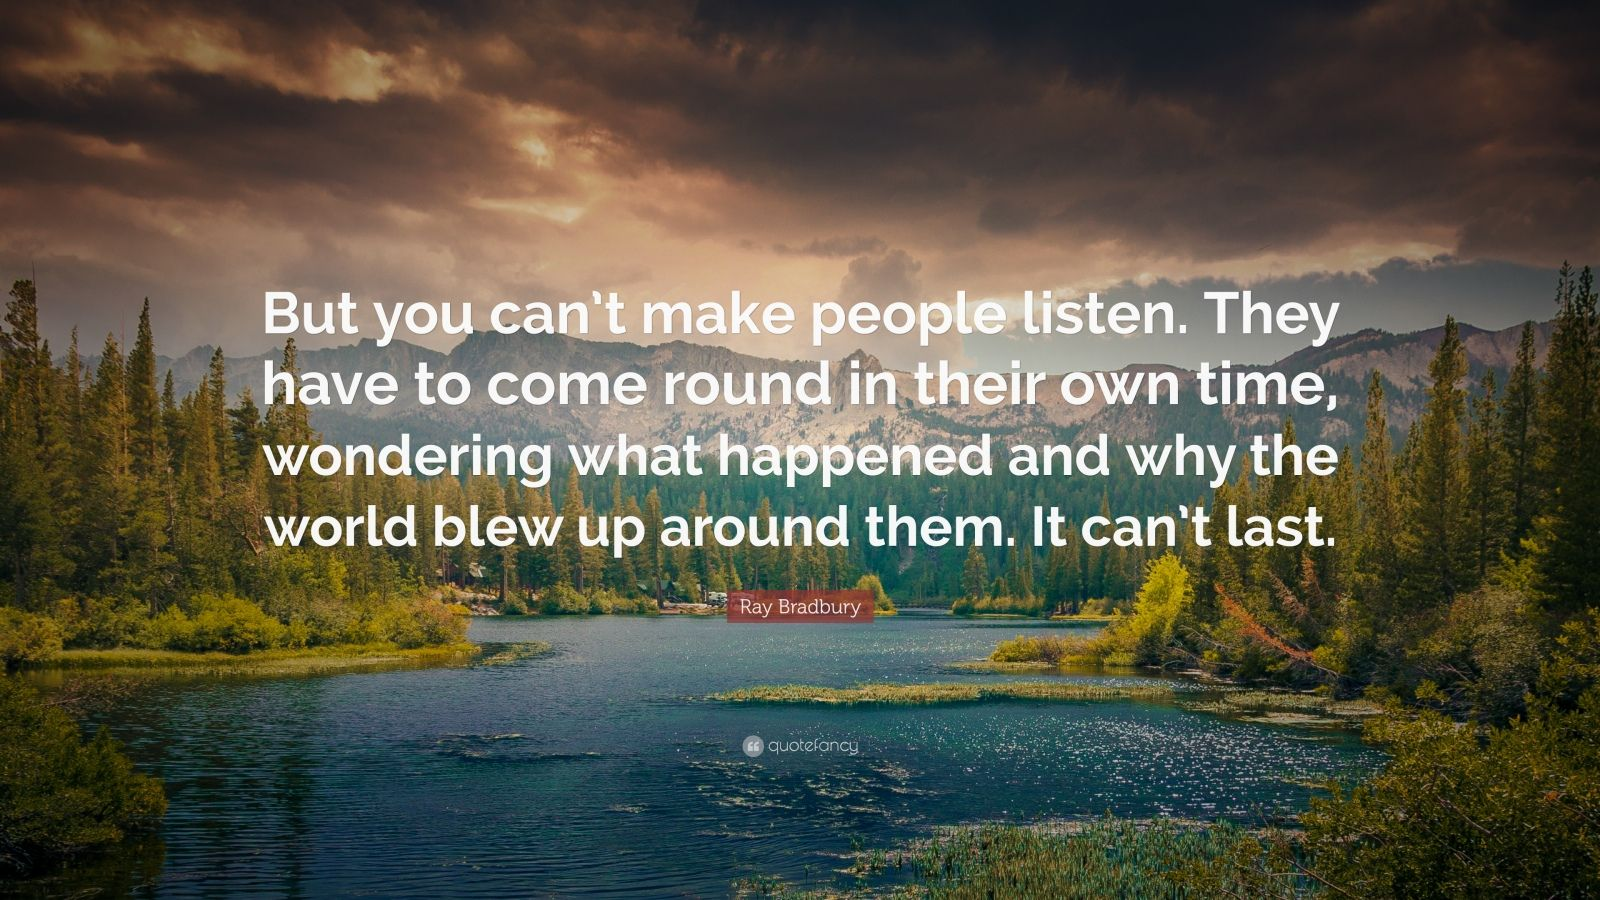 "Ray Bradbury Quote: ""But you can't make people listen. They have to come round in their own time, wondering what happened and why the world blew up around them. It can't last."""